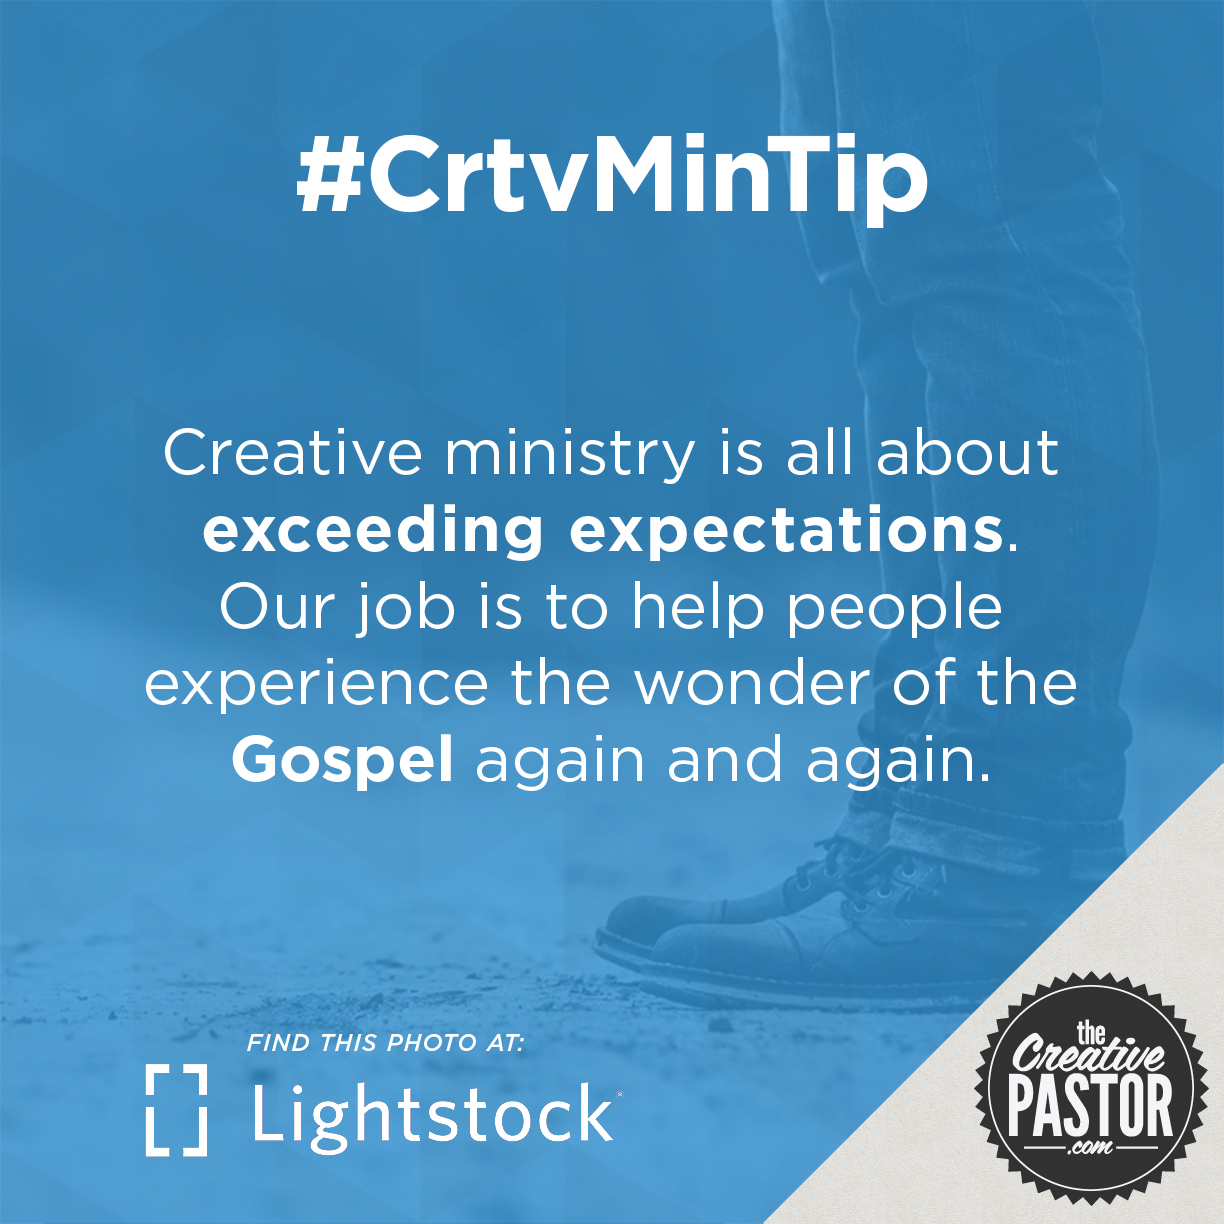 Creative ministry is all about exceeding expectations. Our job is to help people experience the wonder of the Gospel again and again.